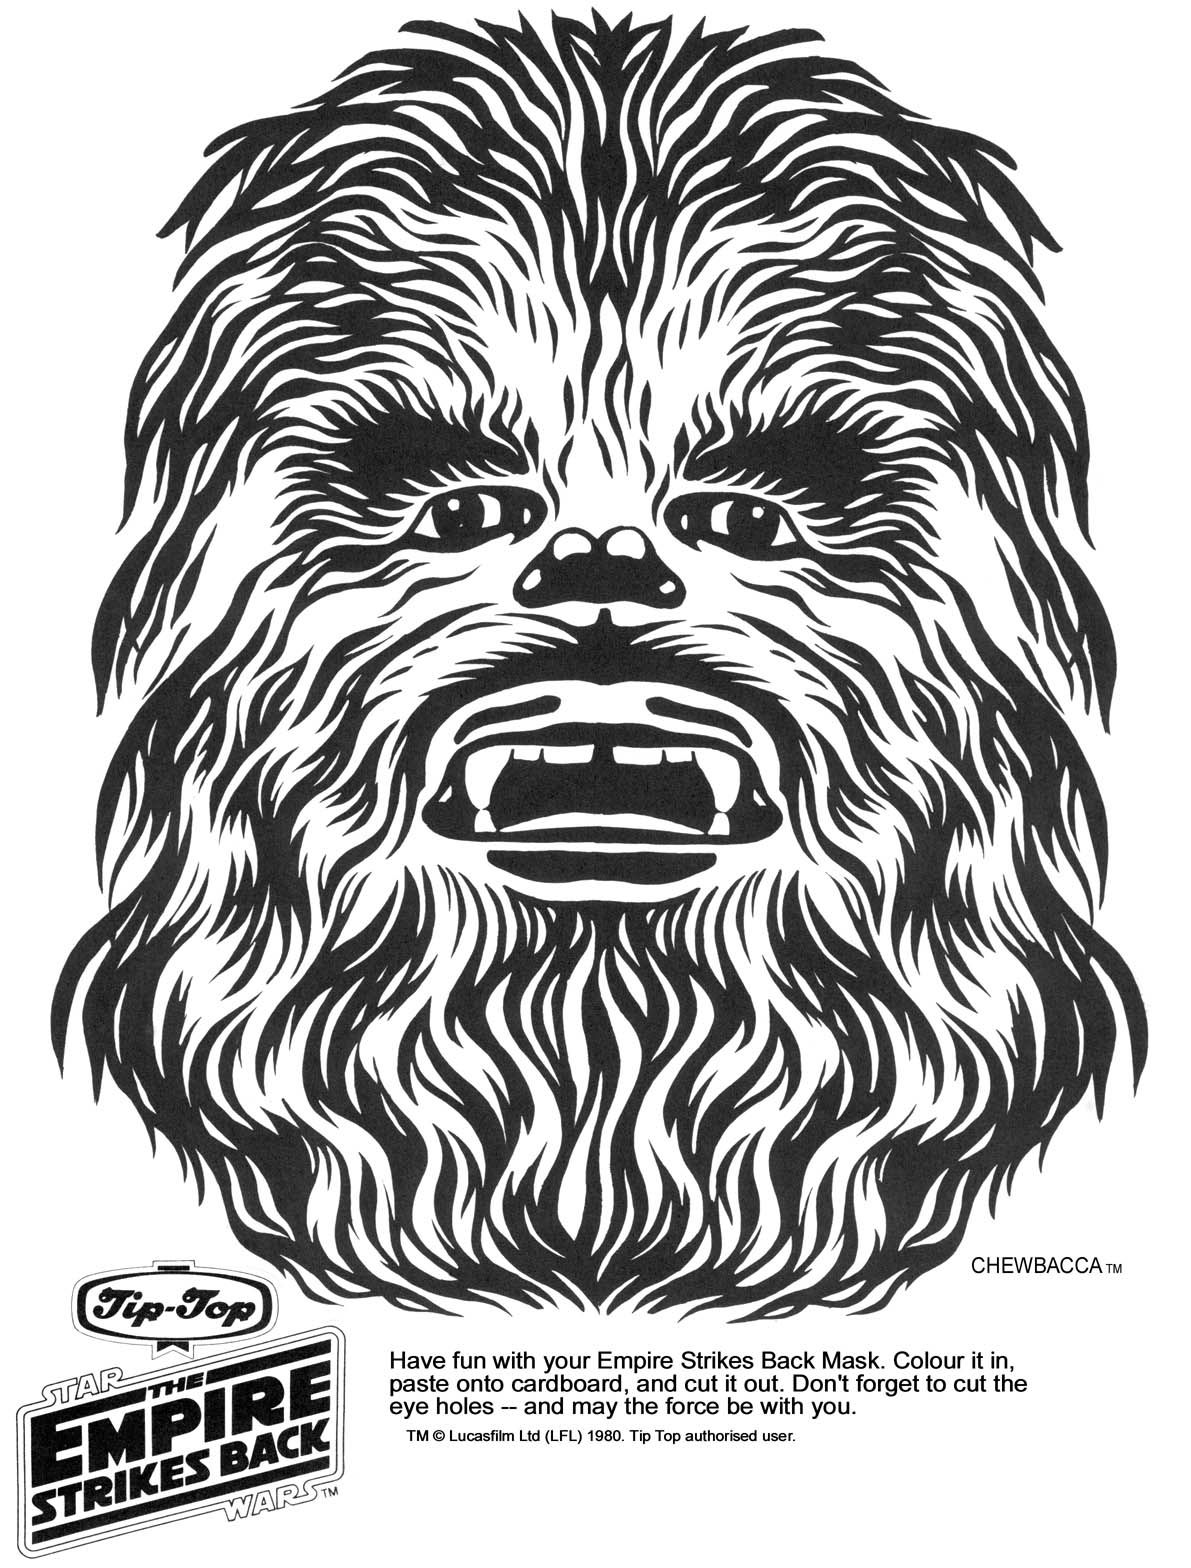 This time around though. Chewbacca clipart black and white